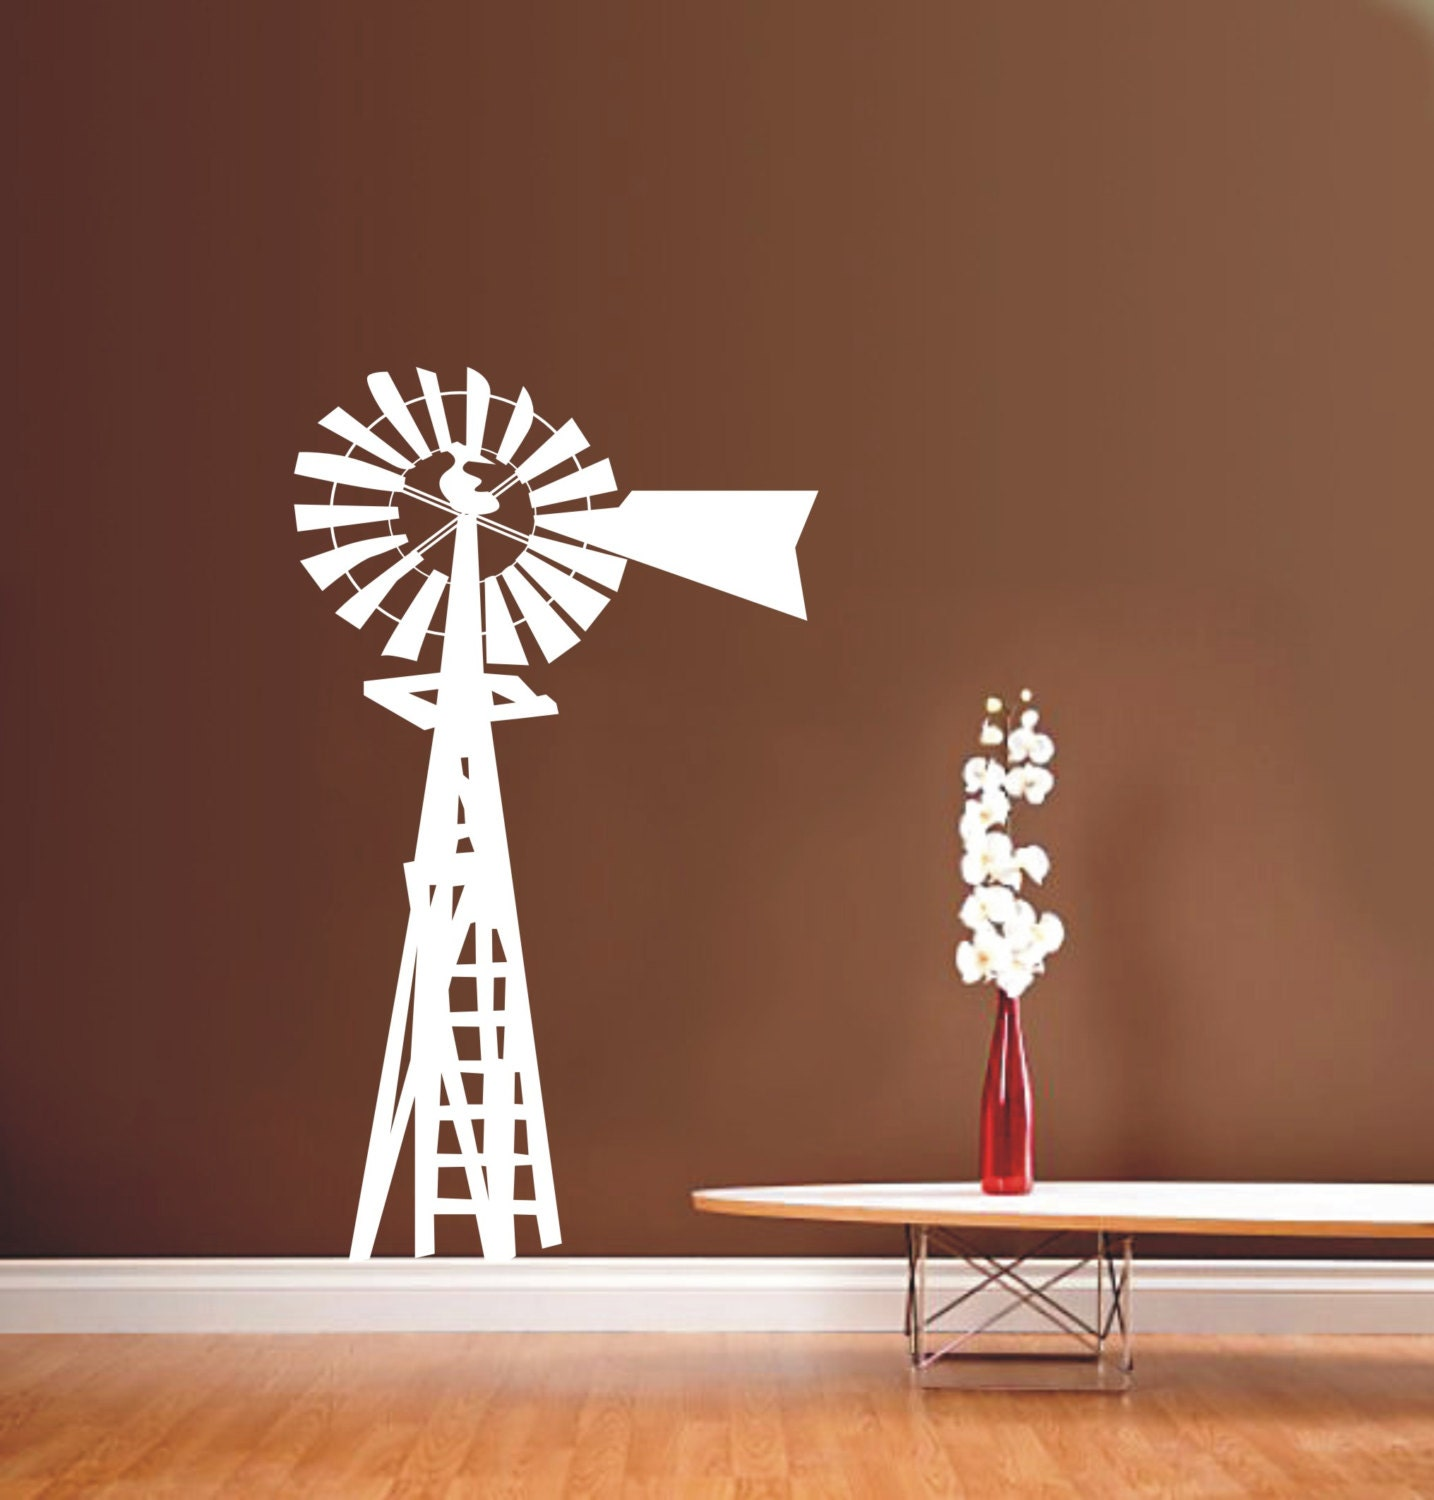 Windmill Energy Machine Vinyl Wall Decal Adhesive Sticker For - Vinyl wall decal adhesive